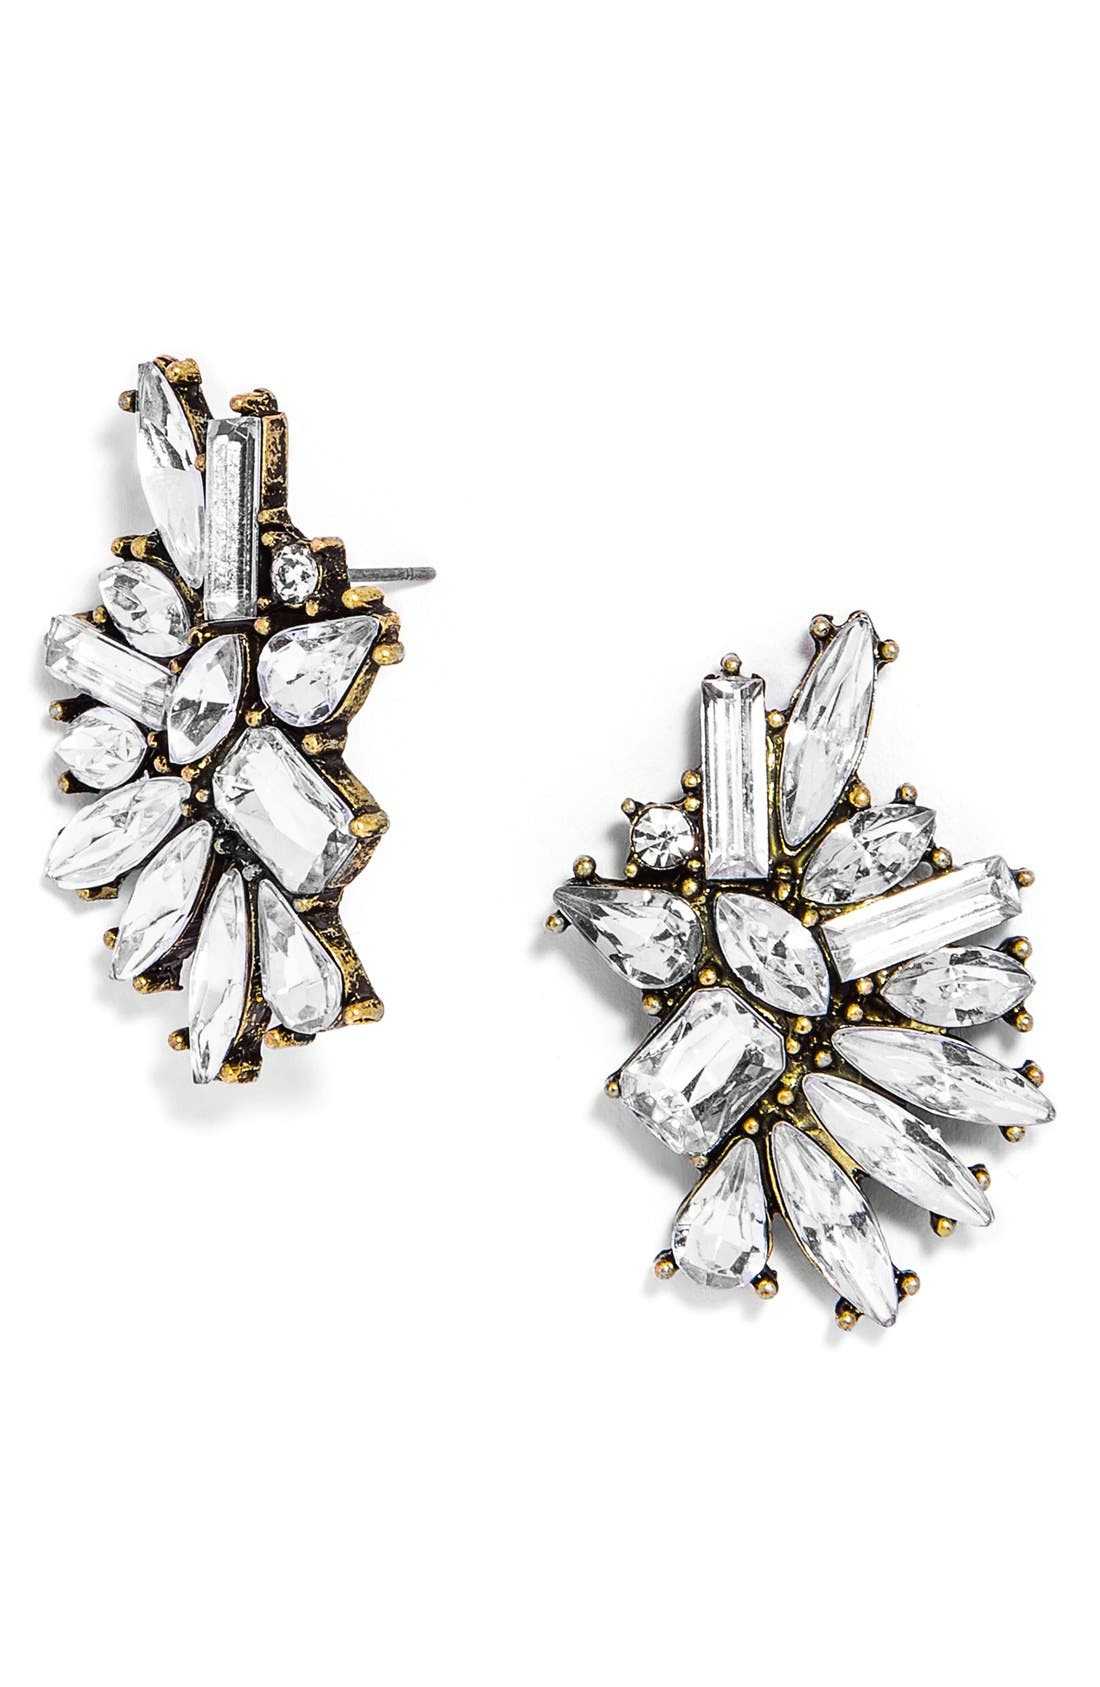 Alternate Image 1 Selected - BaubleBar 'Crystal Dolores' Statement Stud Earrings